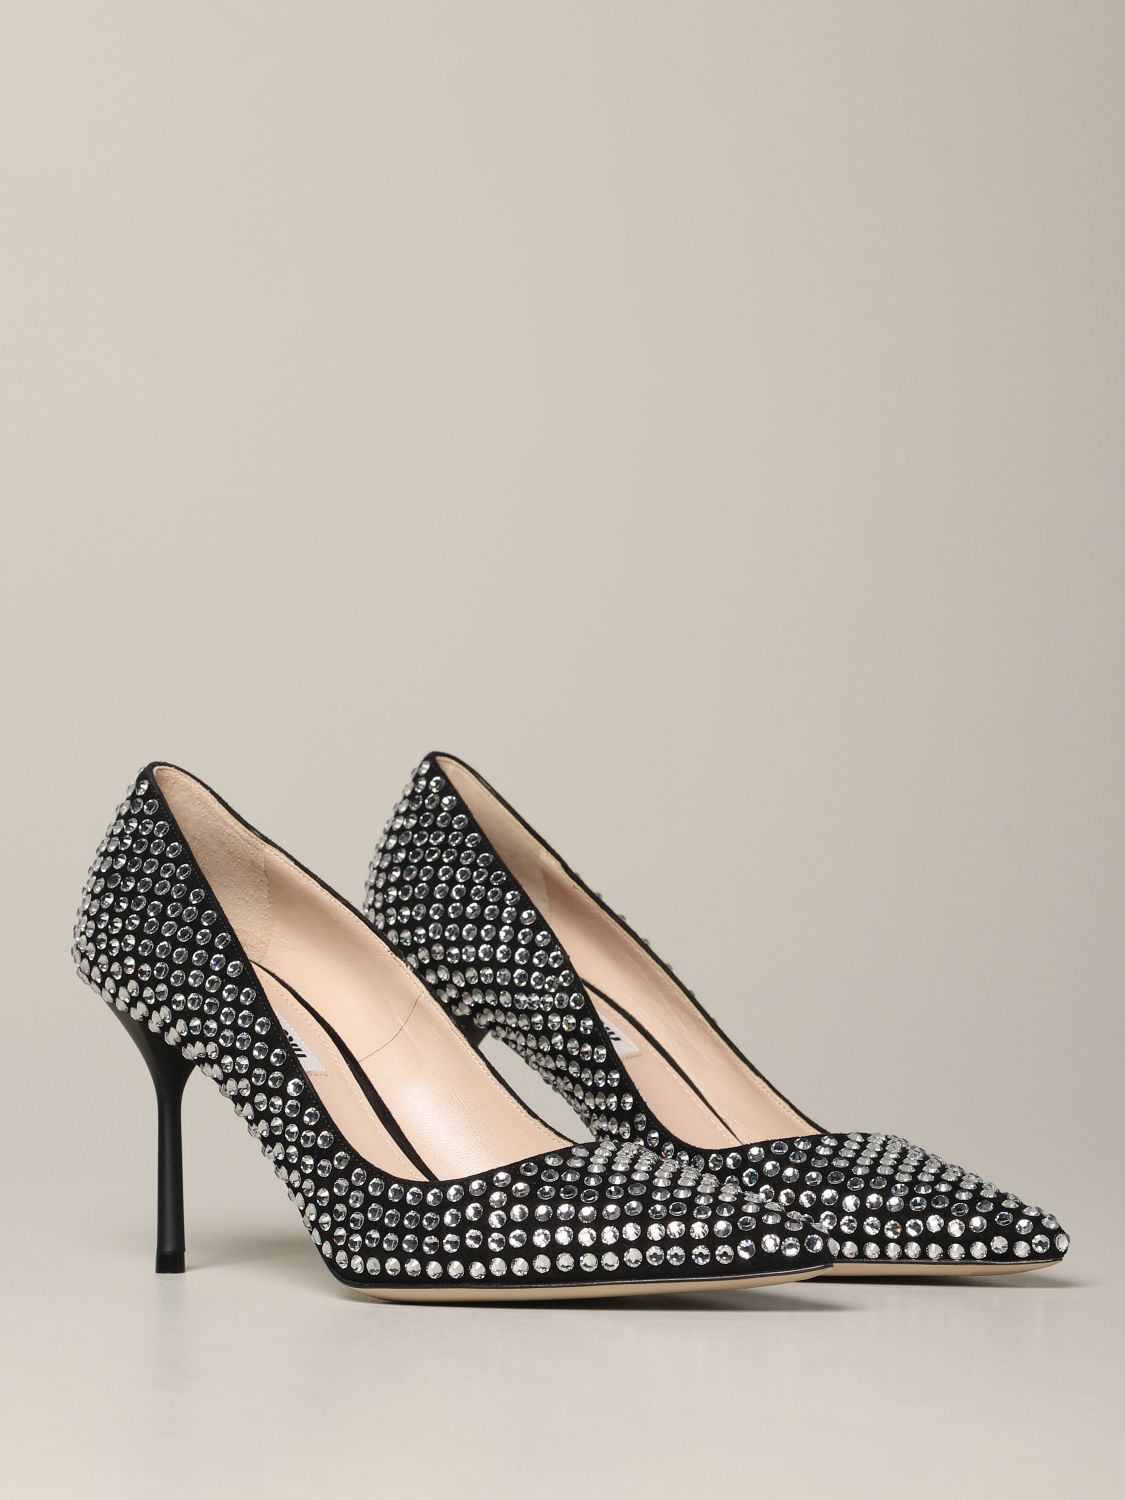 Miu Miu pumps with all-over rhinestones black 2